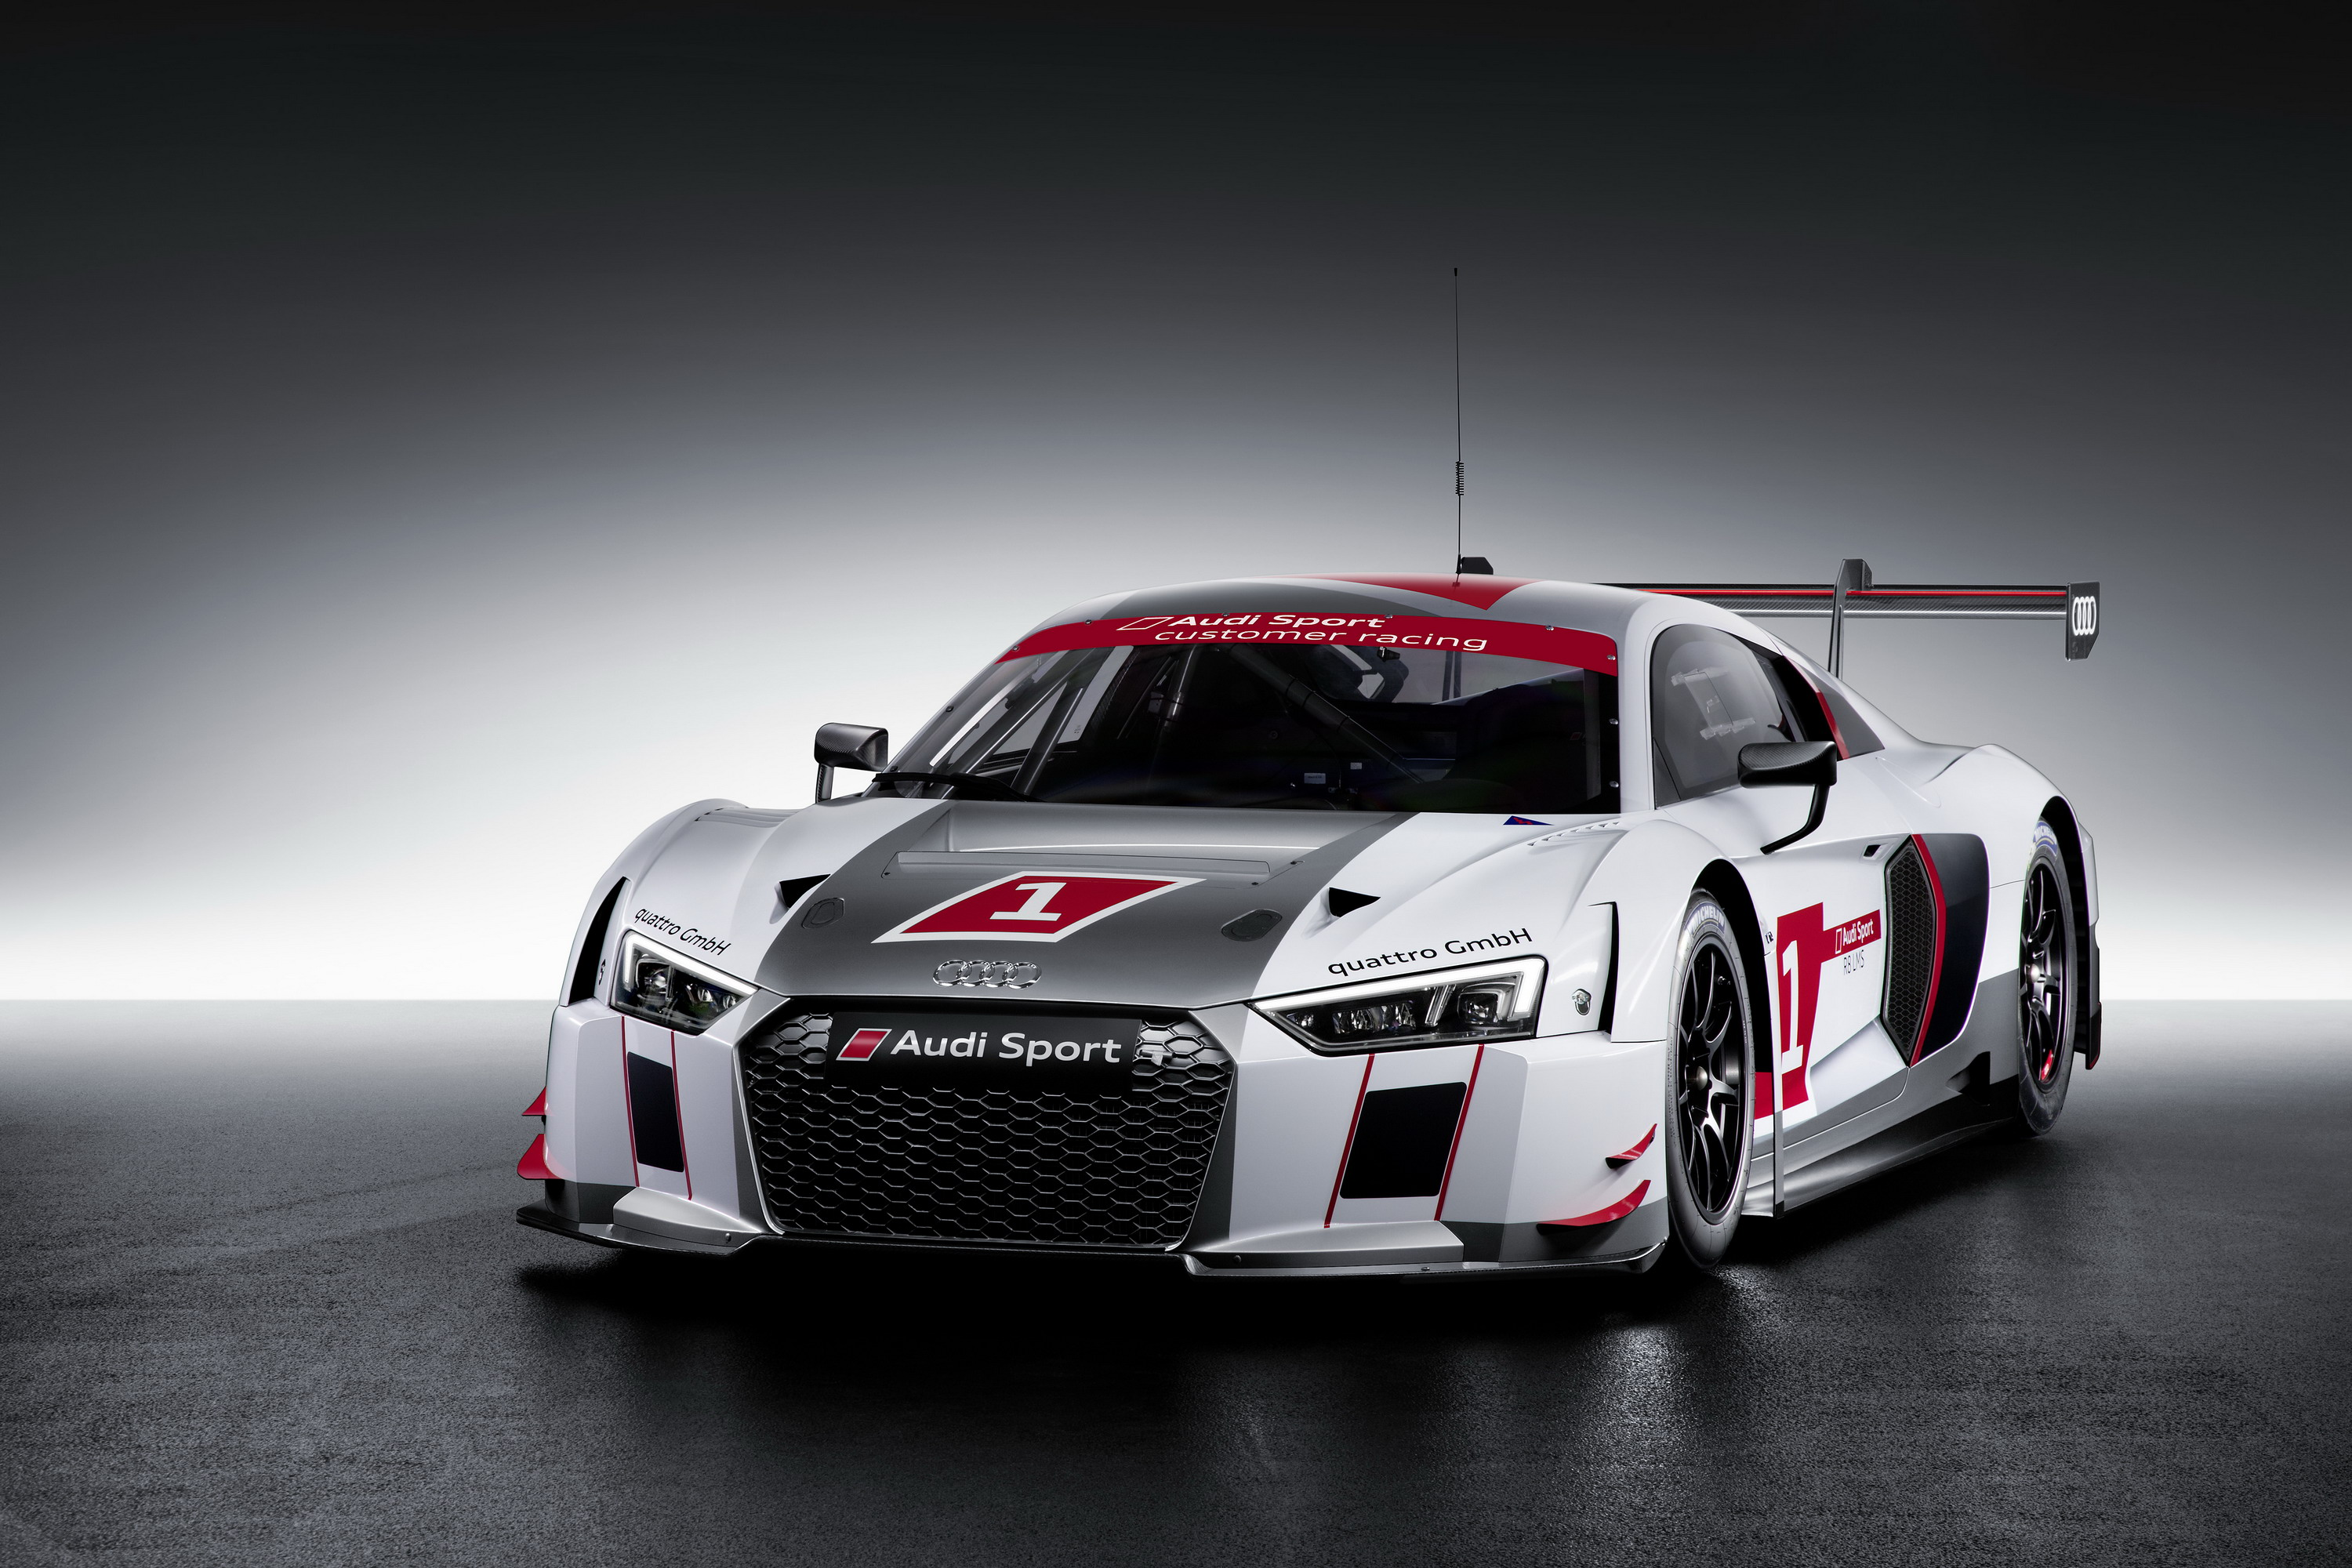 2015 Audi R8 Lms Top Speed